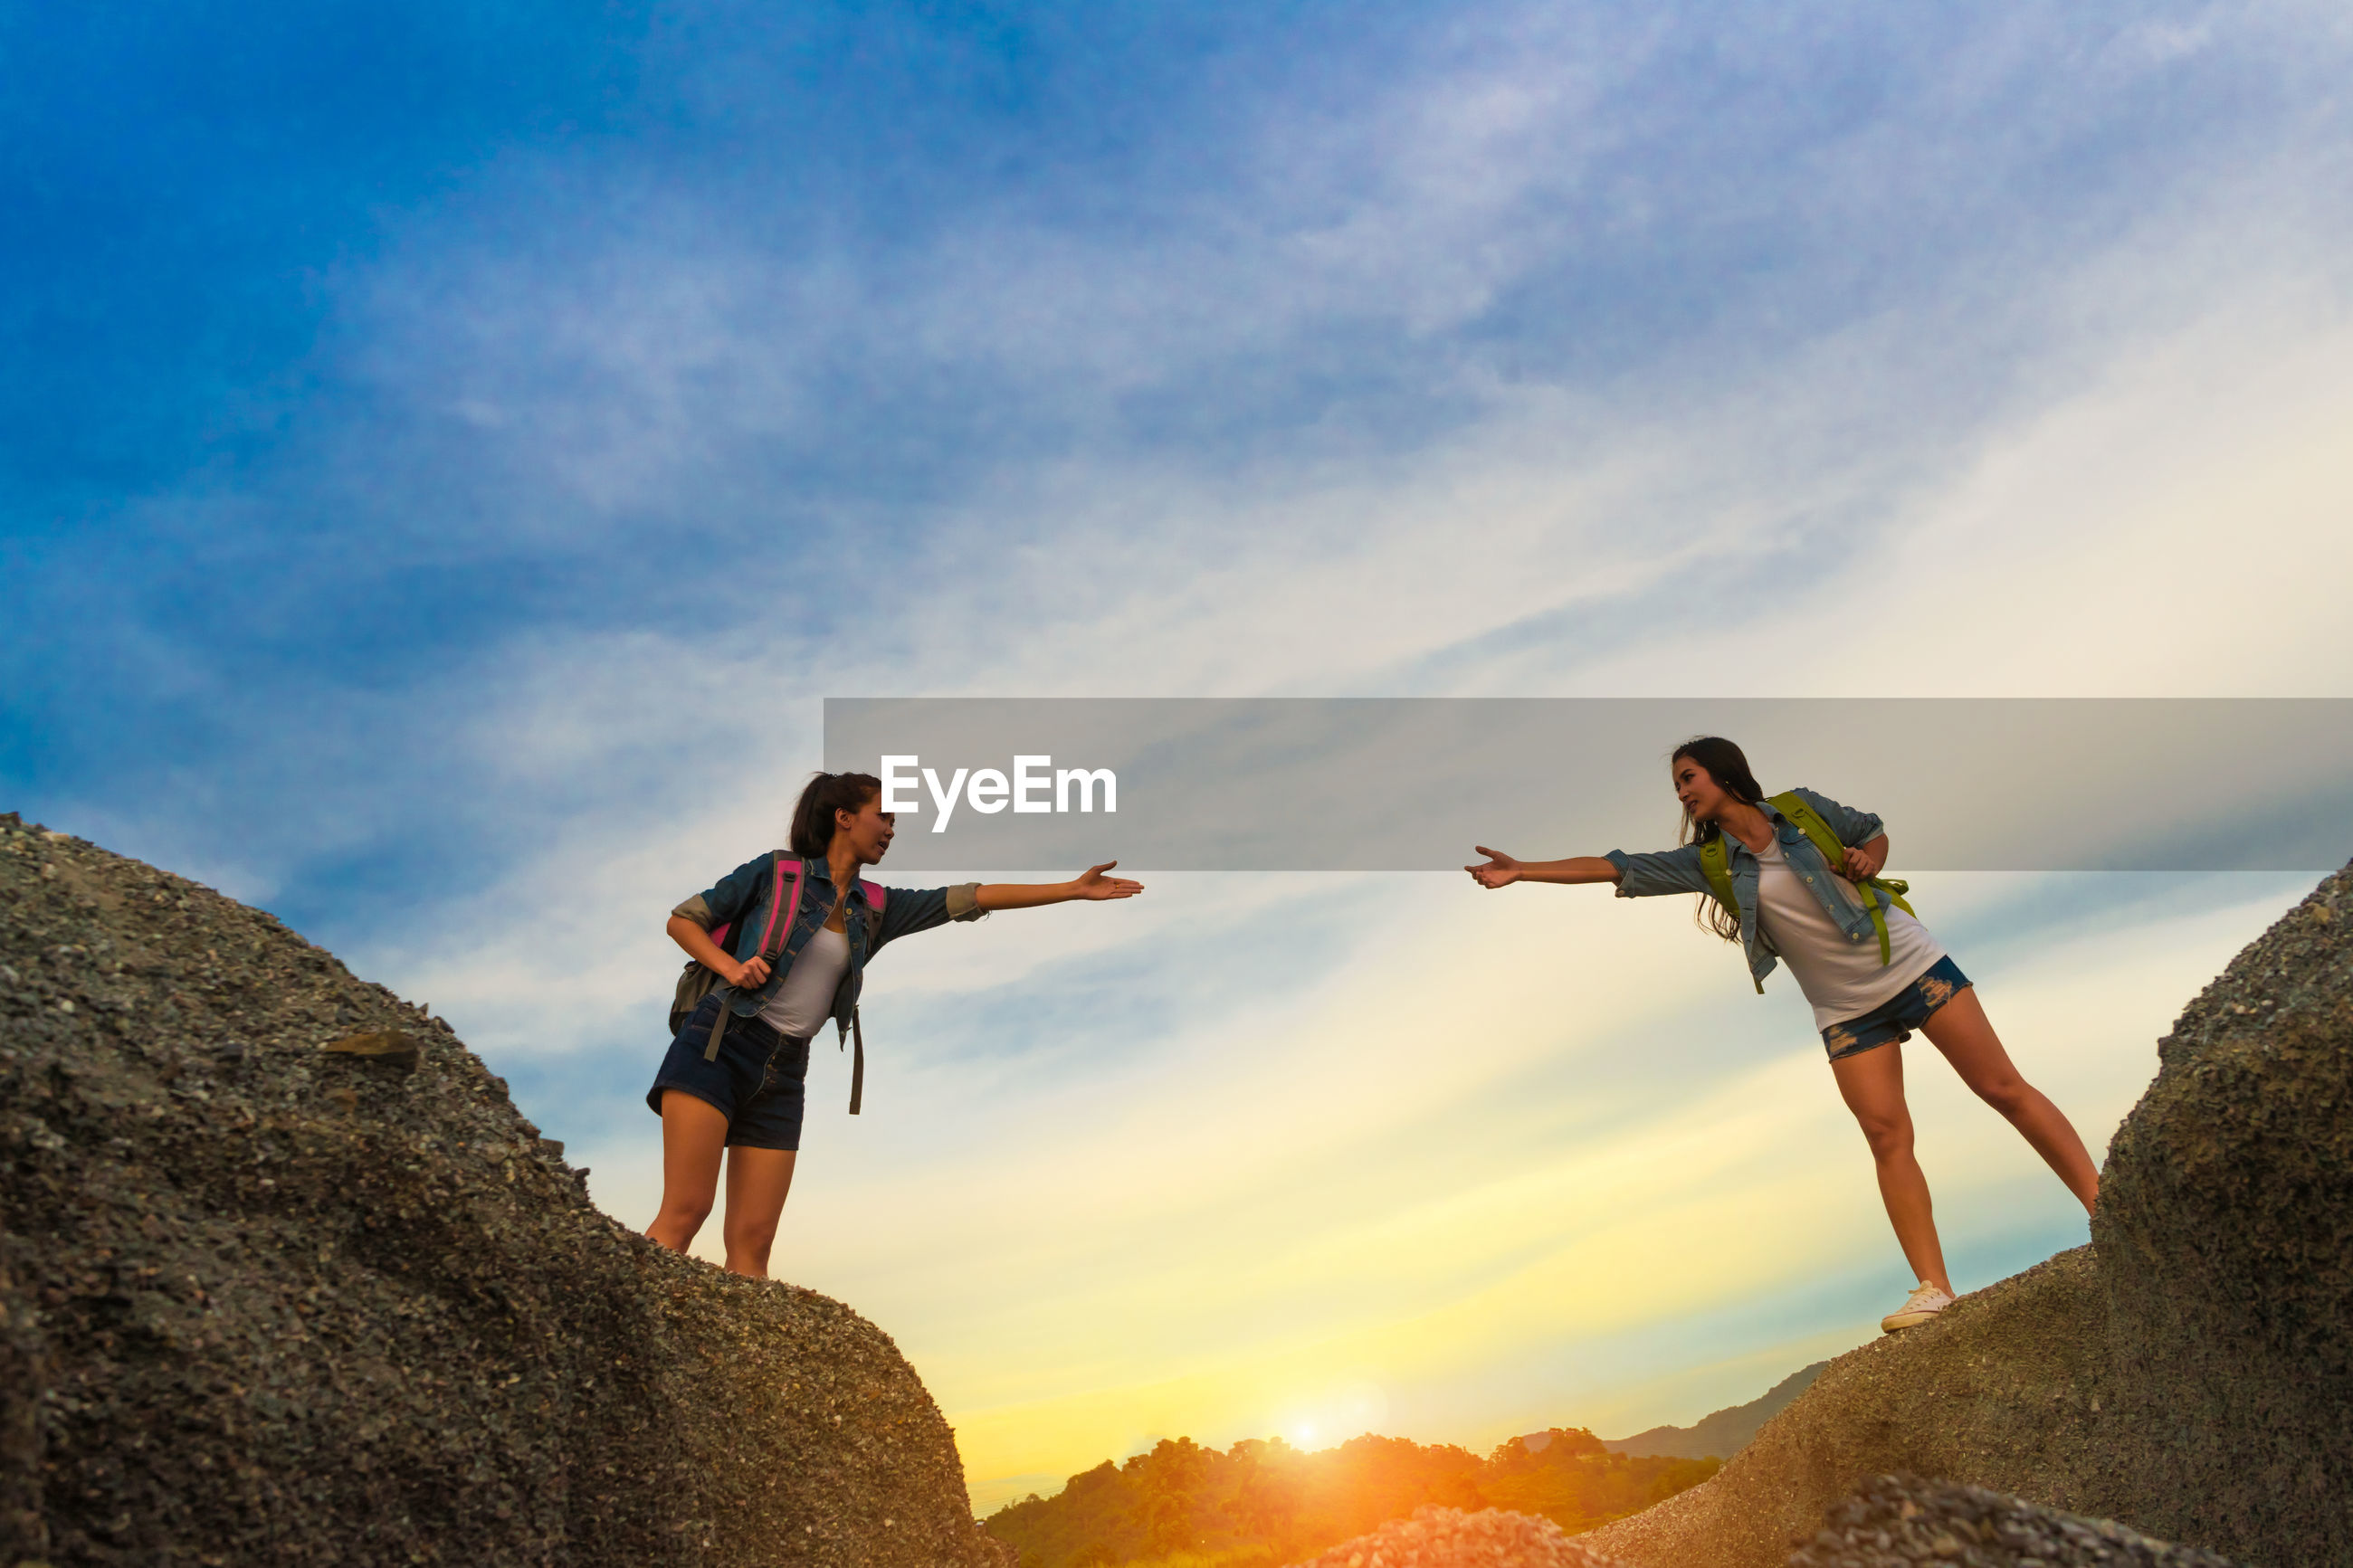 Female friends standing on rock against sky during sunset